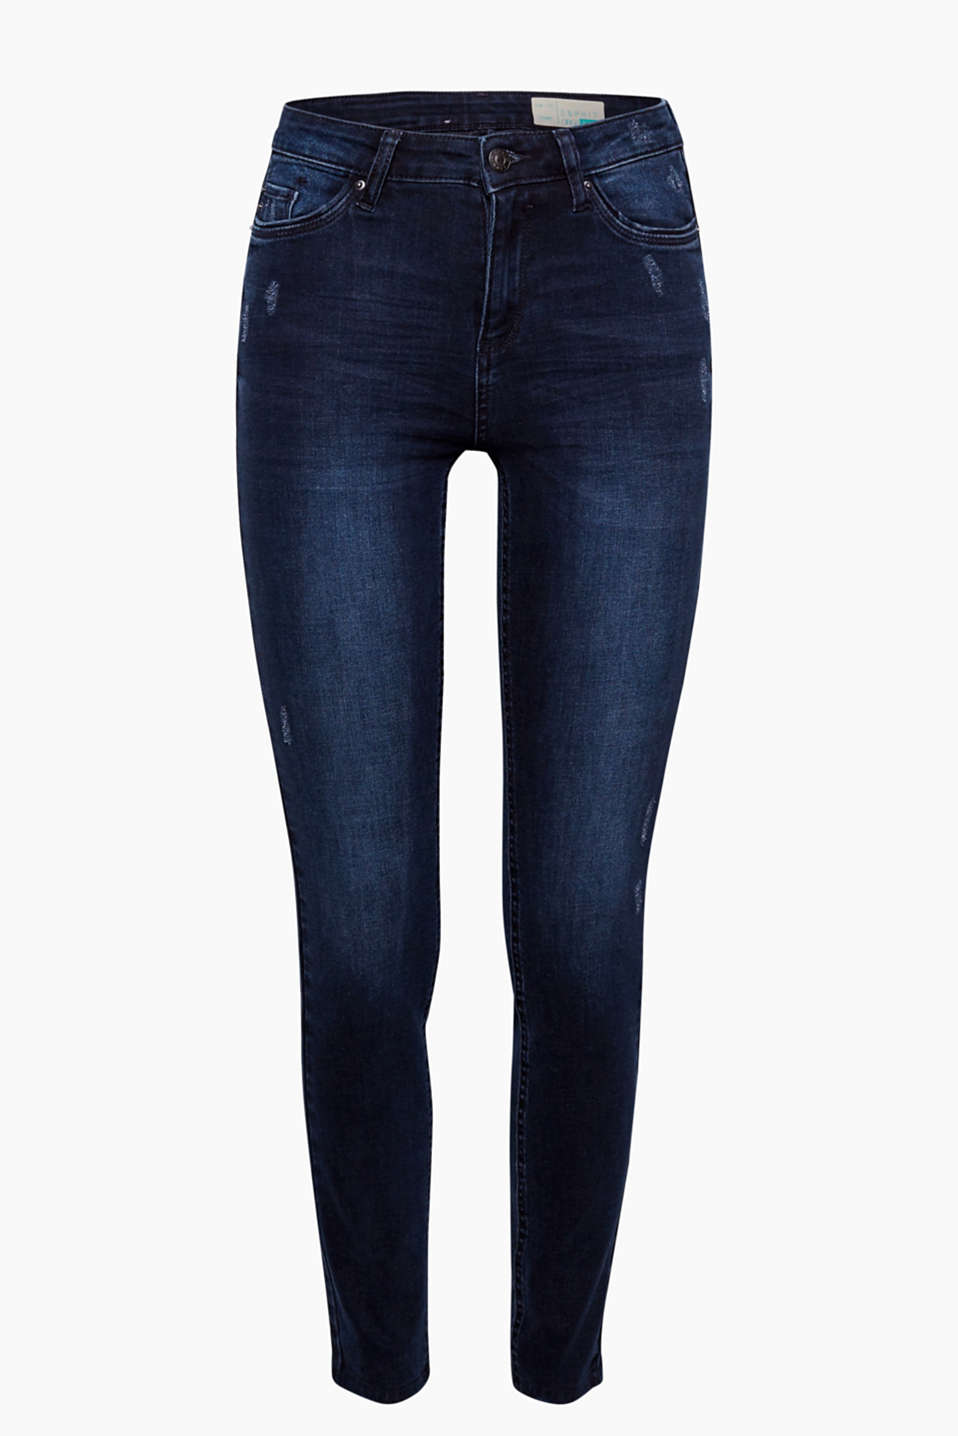 Stylish high-waisted cut and modern organic cotton mix: These high-waisted jeans are so innovative!